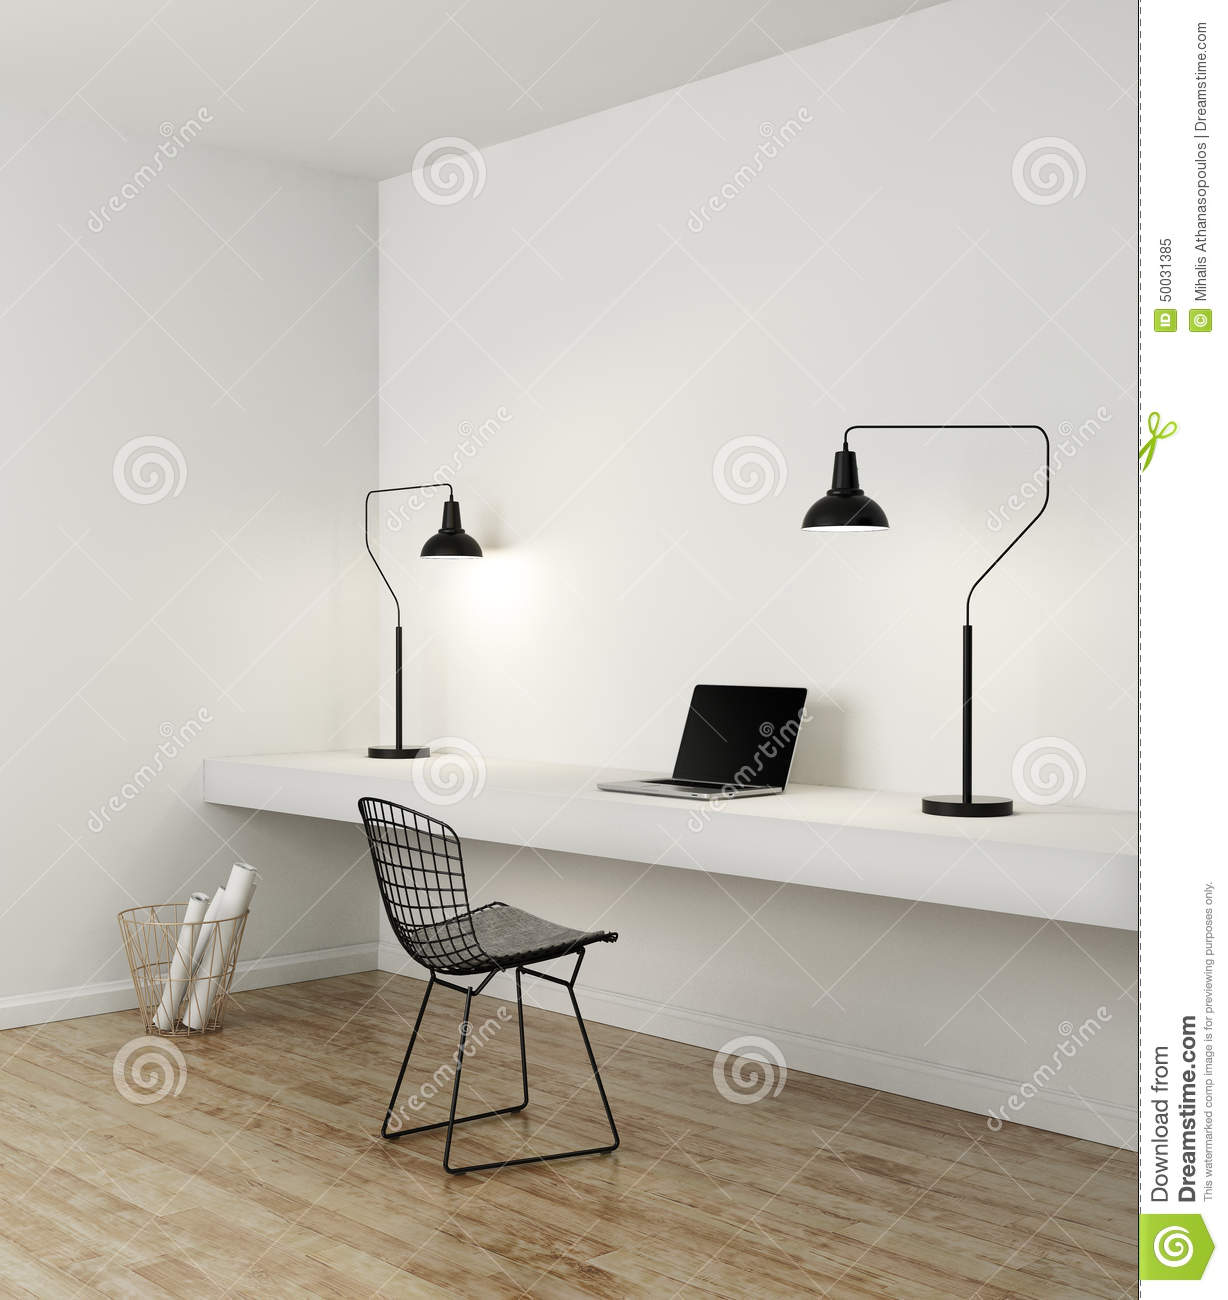 Elegant Minimal White Home Office Stock Image - Image of chillout ...